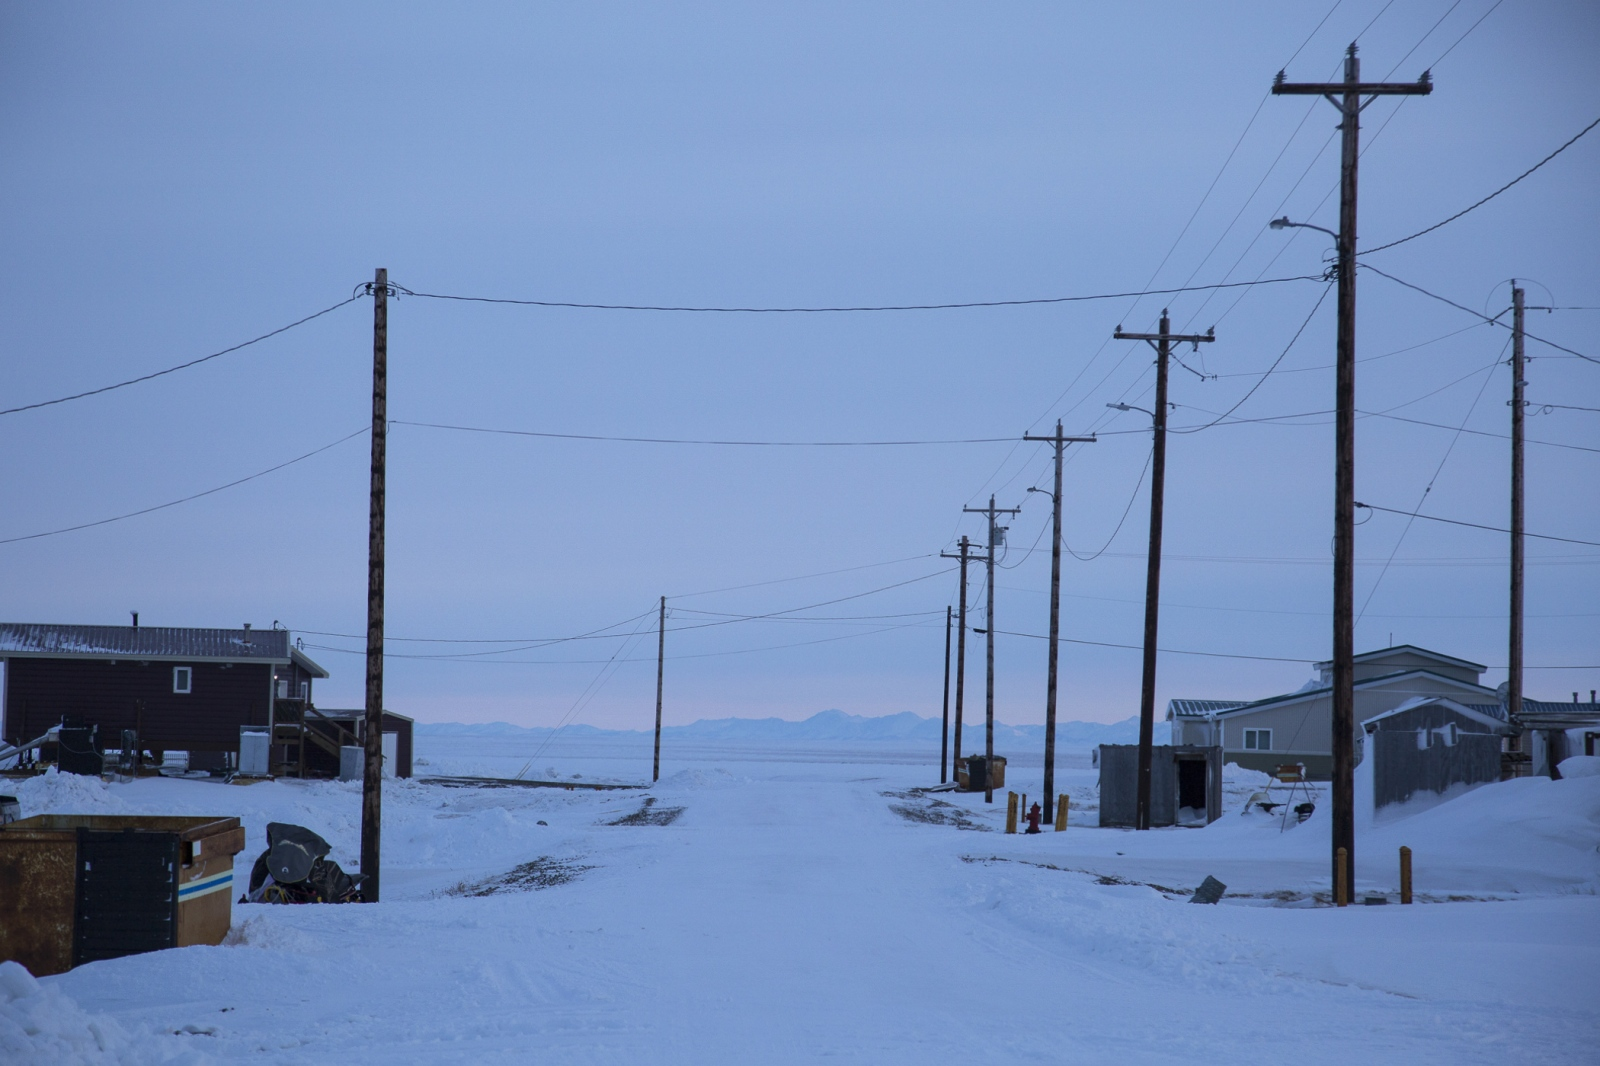 Art and Documentary Photography - Loading 8_The_Inupiat_village_of_Kaktovik__ground_zero_for_the_battle_for_or_against_oil_exploration_in_the_Arctic_Refuge_U3A5482_copy.jpg